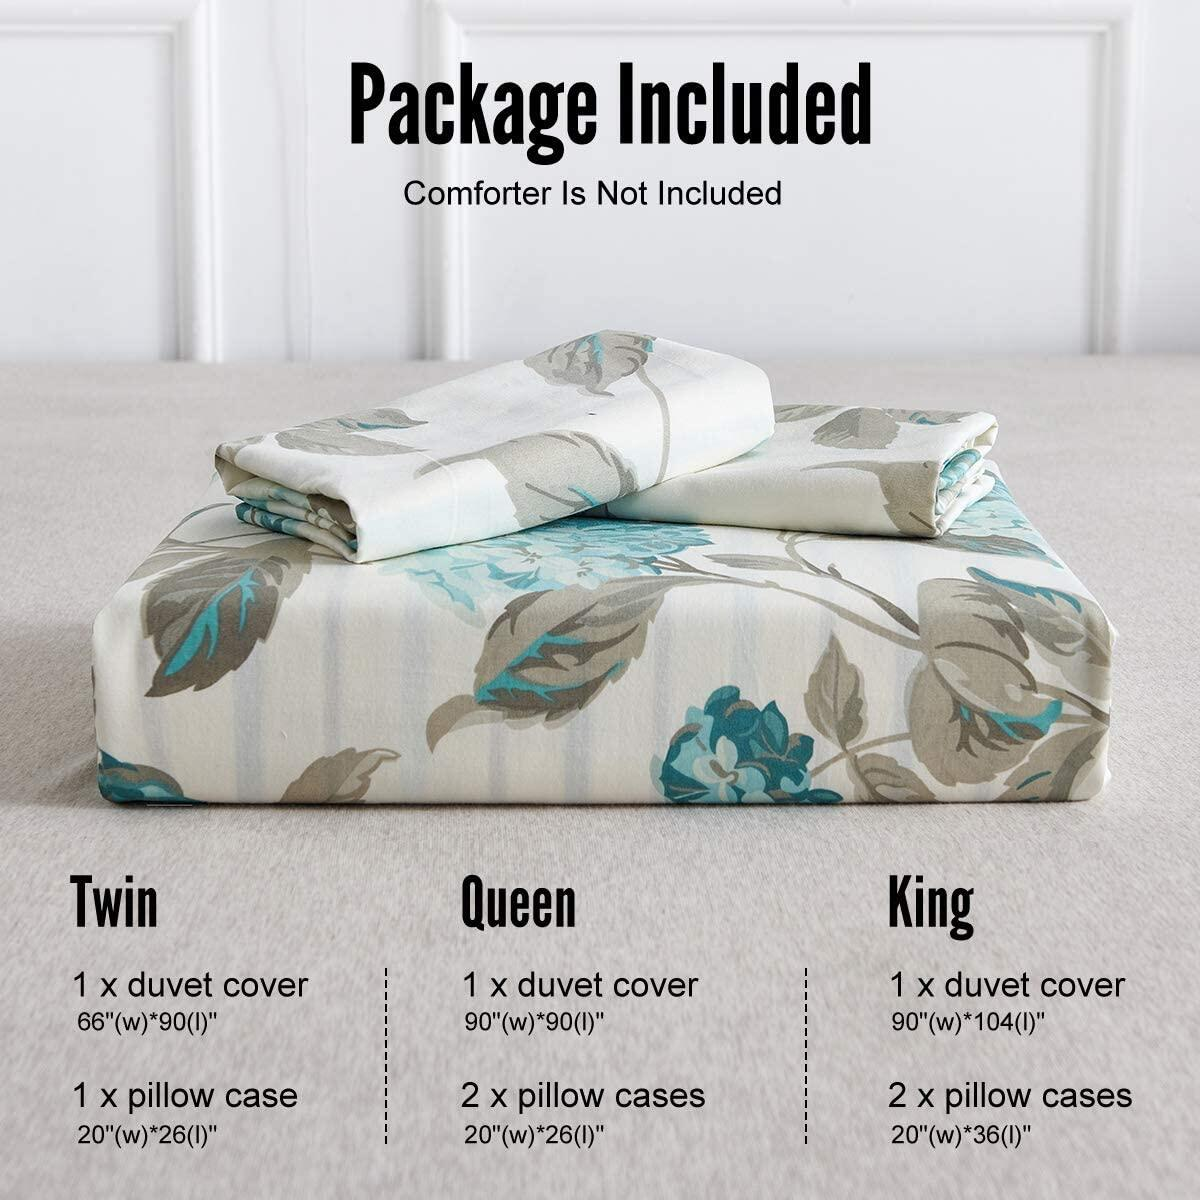 WARMDERN Duvet Cover Set King Floral 100% Cotton 3 Pieces Green Flower Plant Soft Breathable Lightweight Bedding Set with Zipper Closure Corner Ties, 1 Comforter Cover and 2 Pillowcase (King,Green)